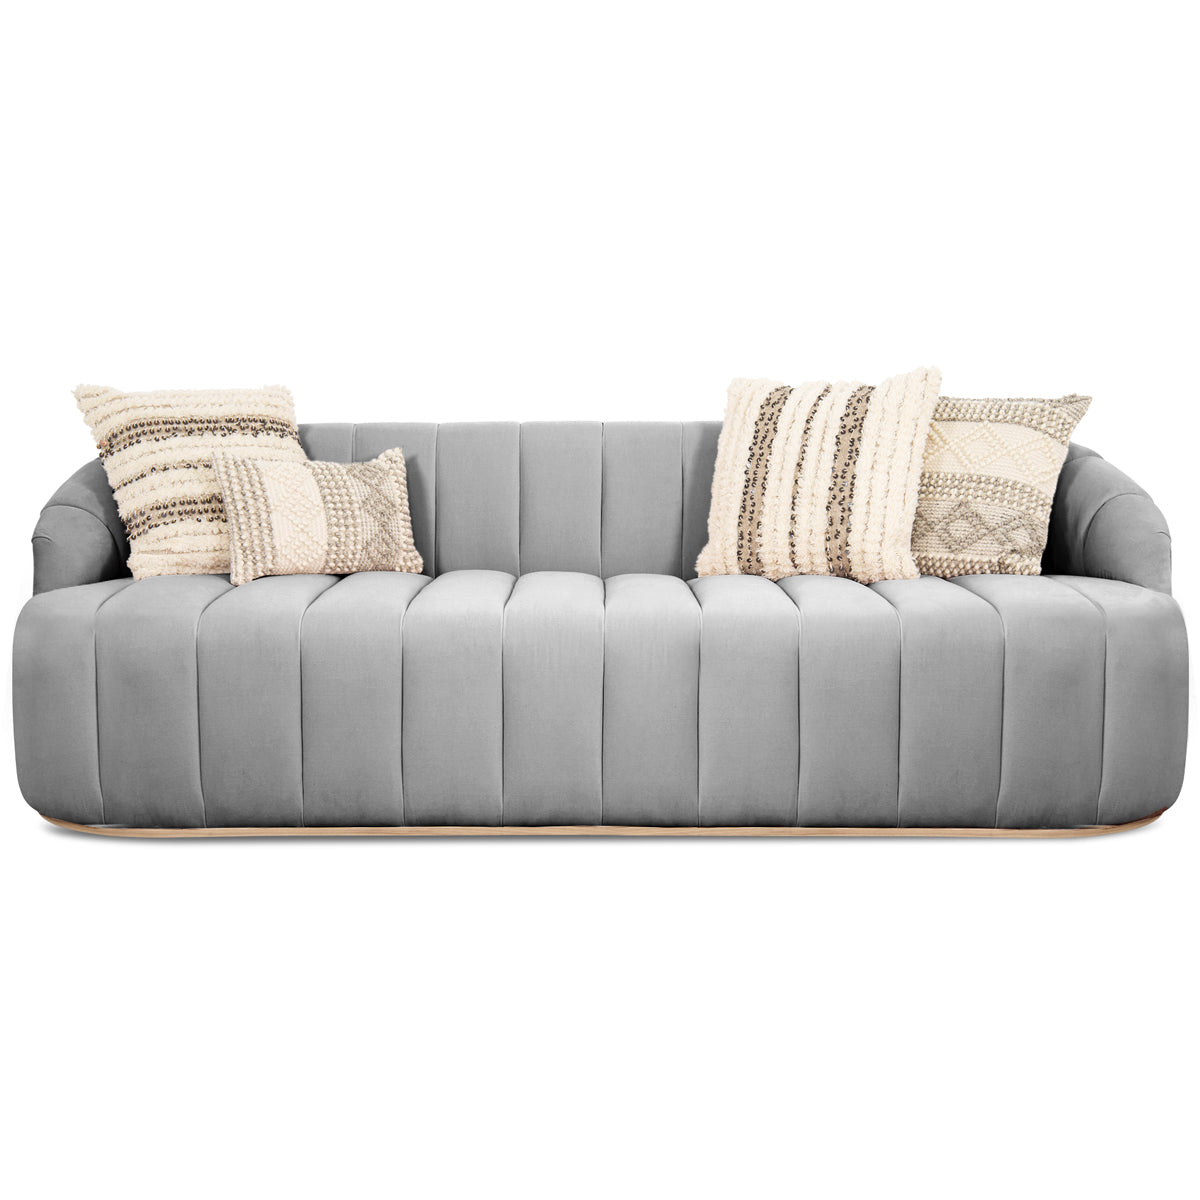 Avalon Sofa in Velvet - ModShop1.com